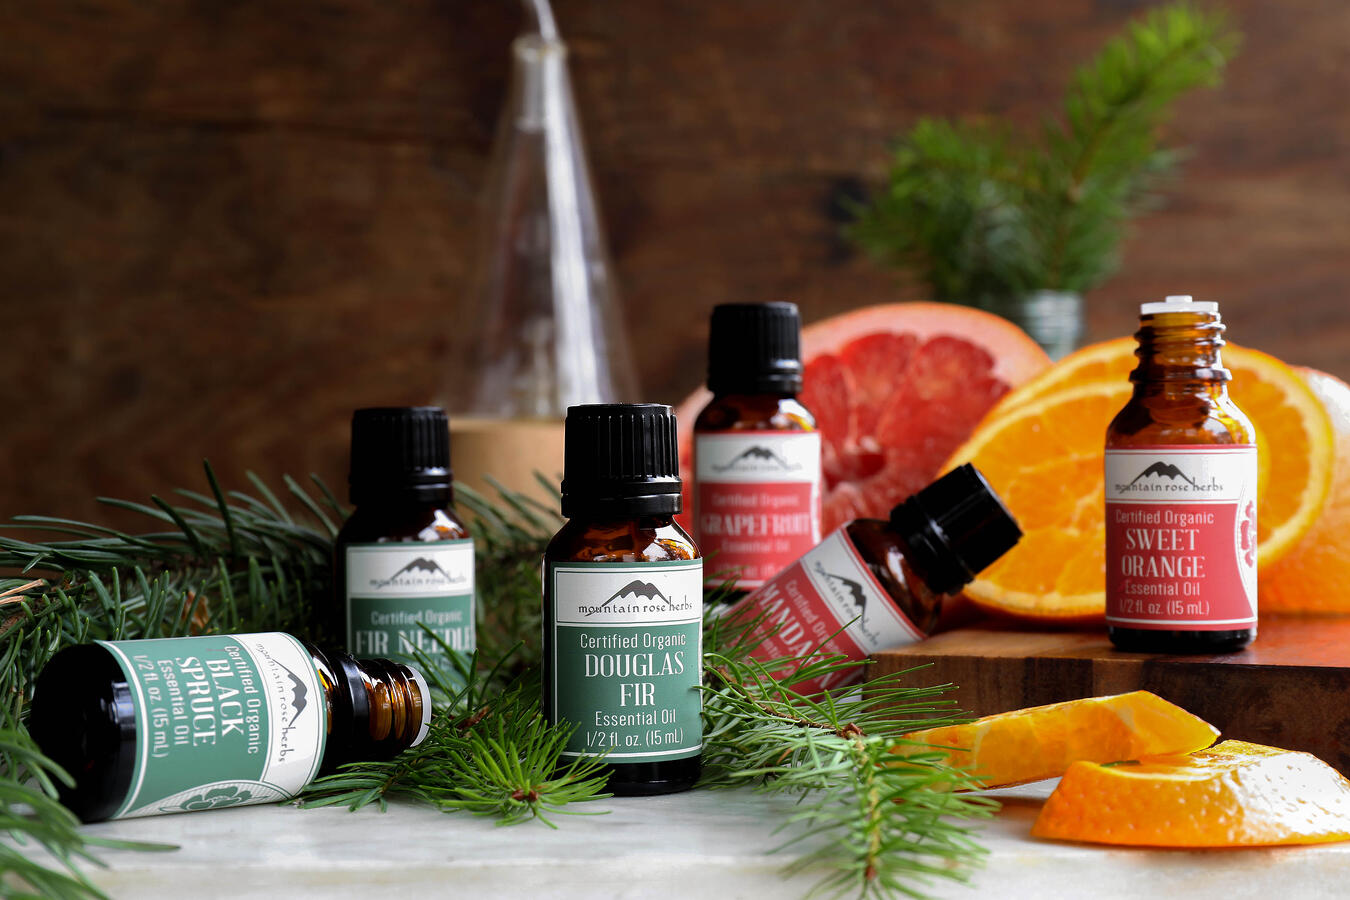 Black Spruce, Fir Needle, Douglas Fir, Grapefruit, Mandarin, and Sweet Orange essential oils surrounded by fir boughs and citrus.